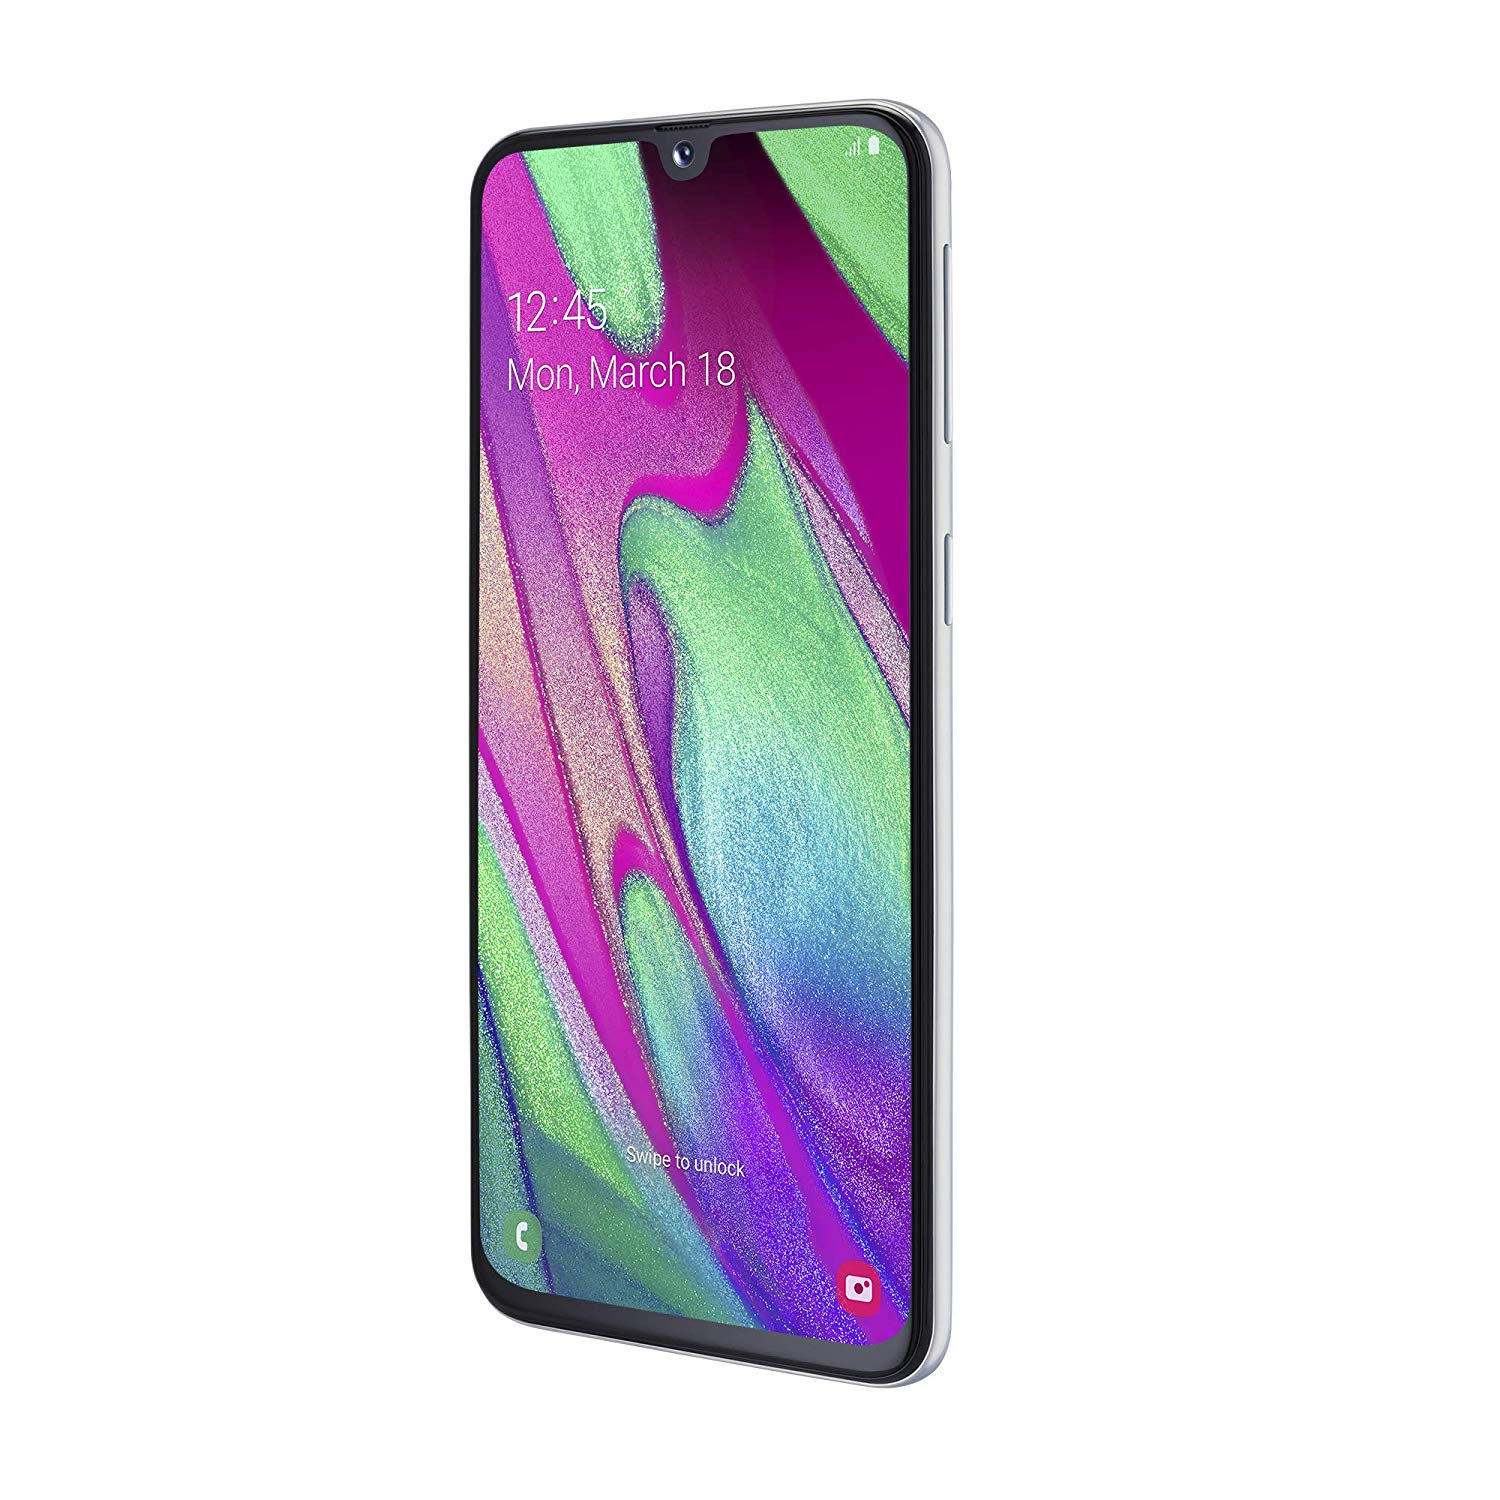 Samsung Galaxy A40, LTE Band, 6 Internal 4GB De Memoria, 4GB Ram, Dual SIM, Screen 5.9